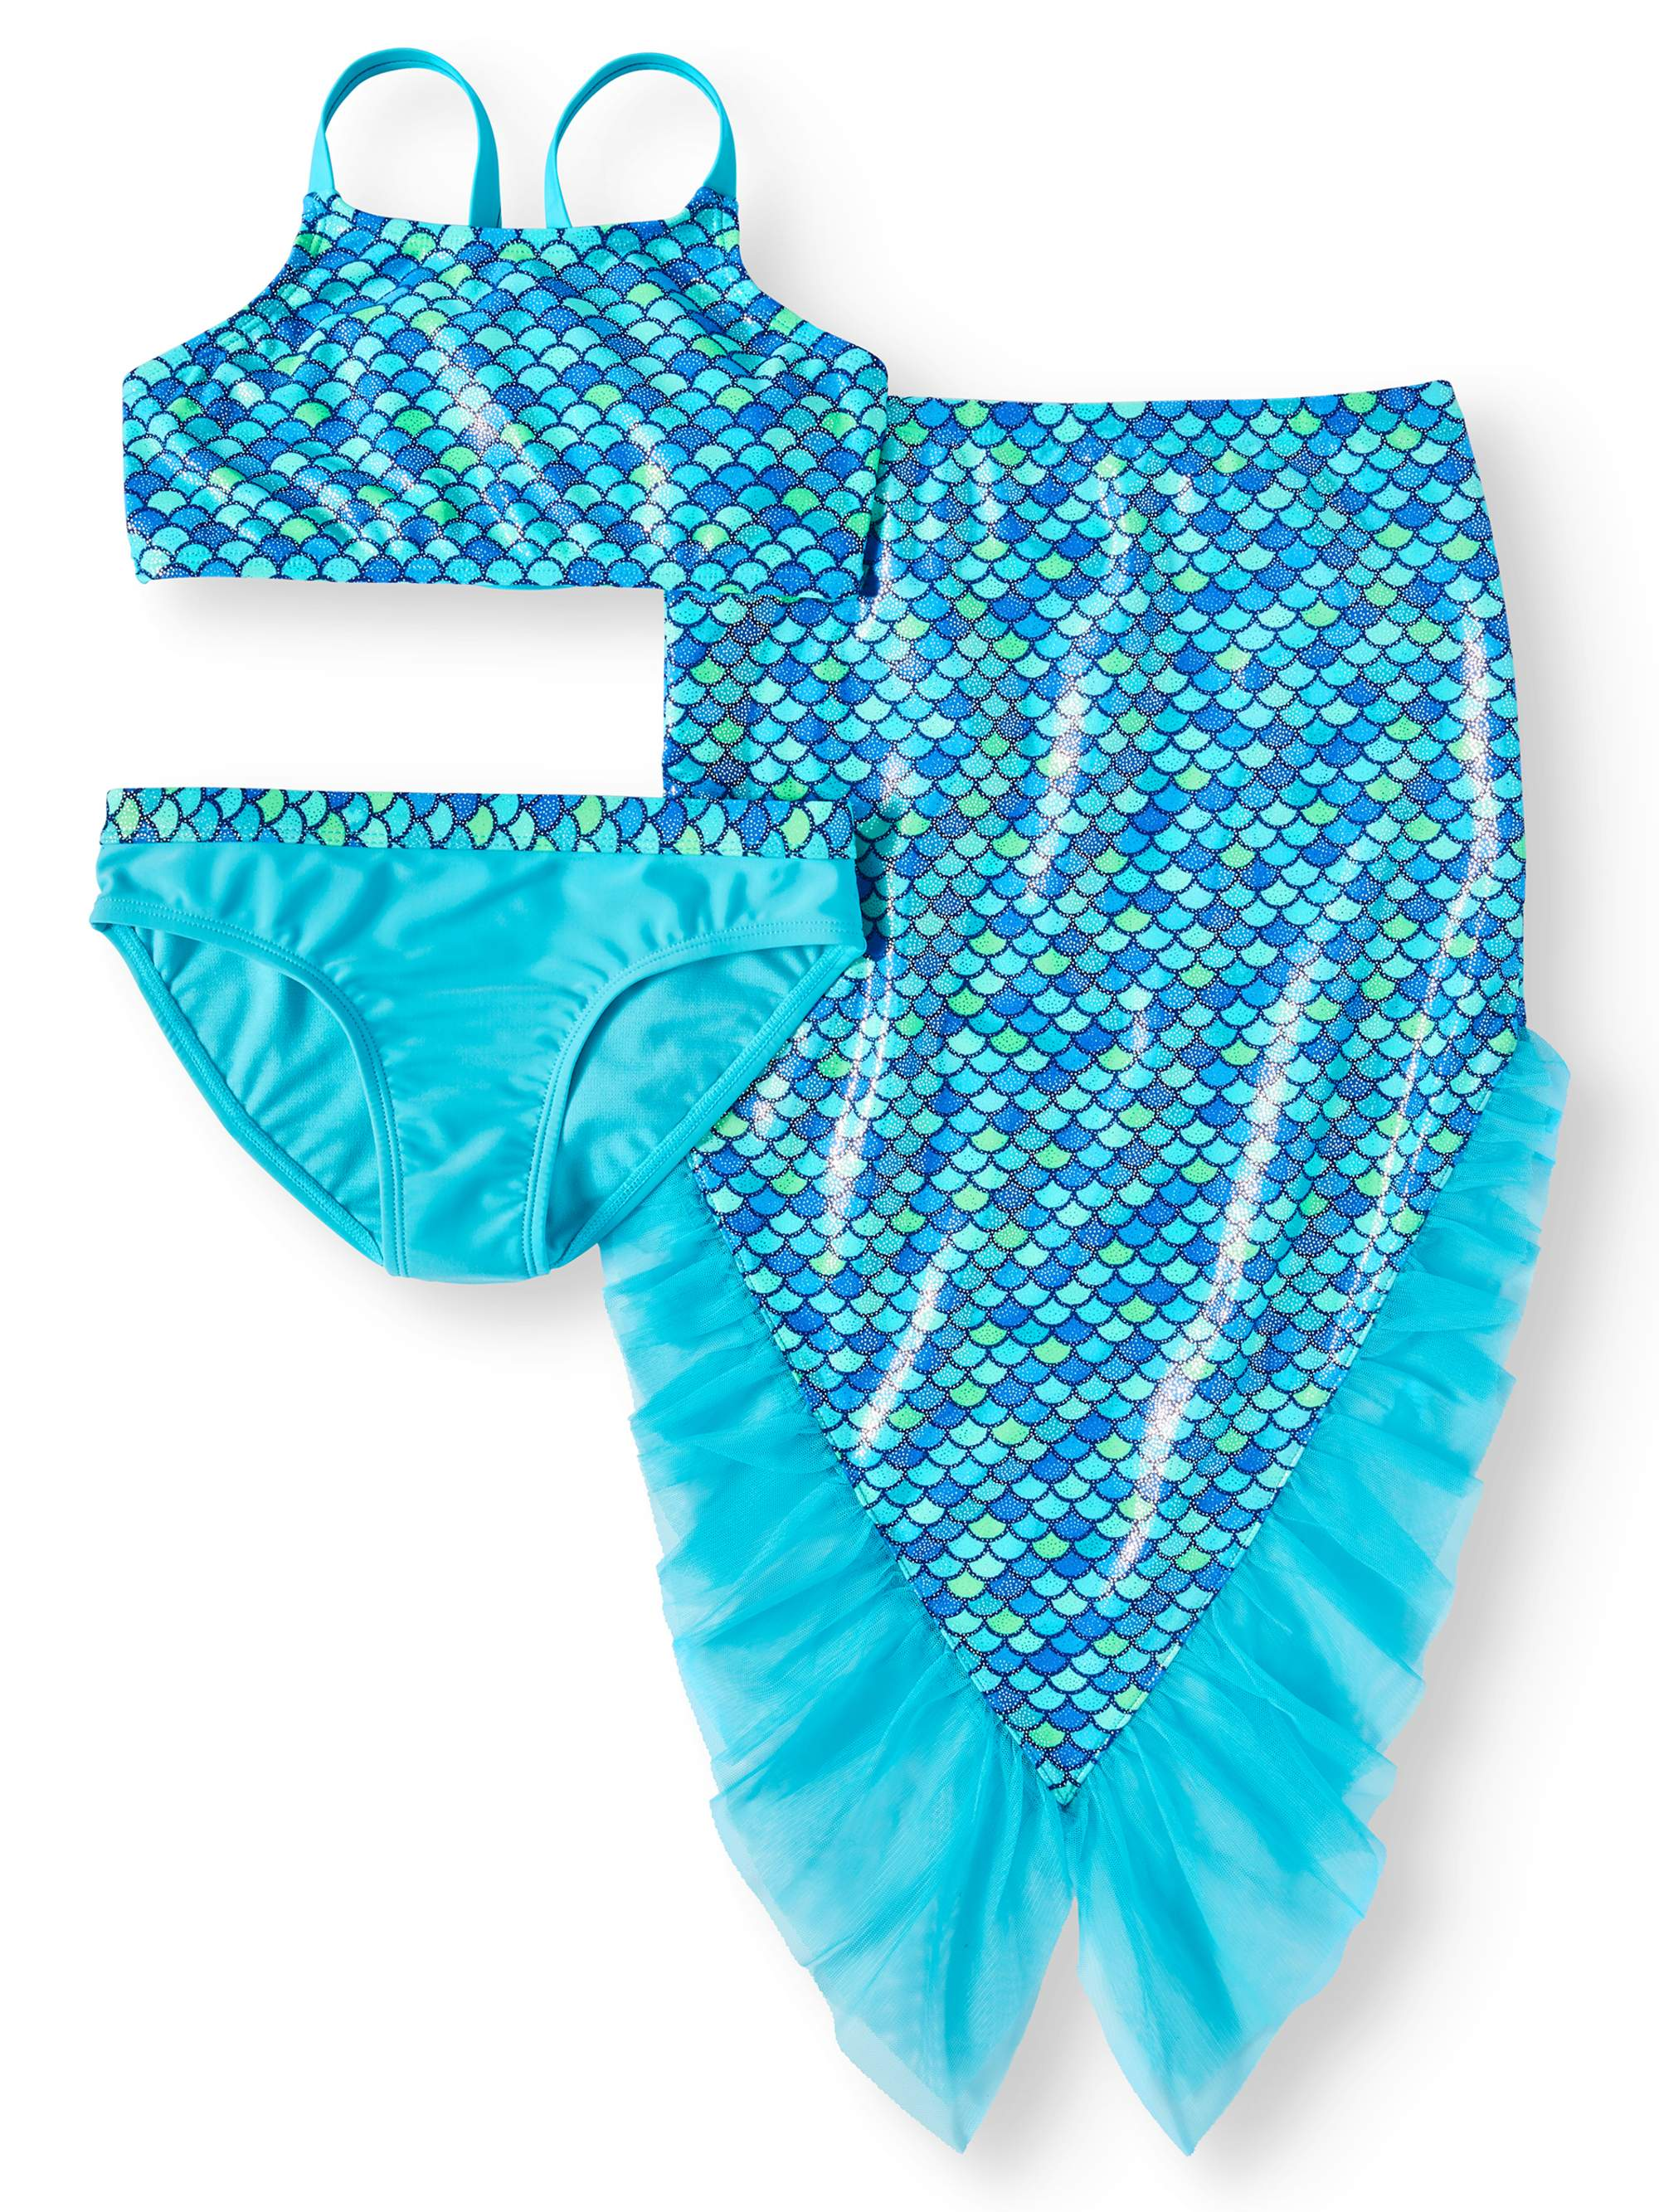 b6cffb54468ed Mermaid Bikini Swimsuit and Skirt Coverup, 3-Piece Set (Little Girls & Big  Girls) - Walmart.com